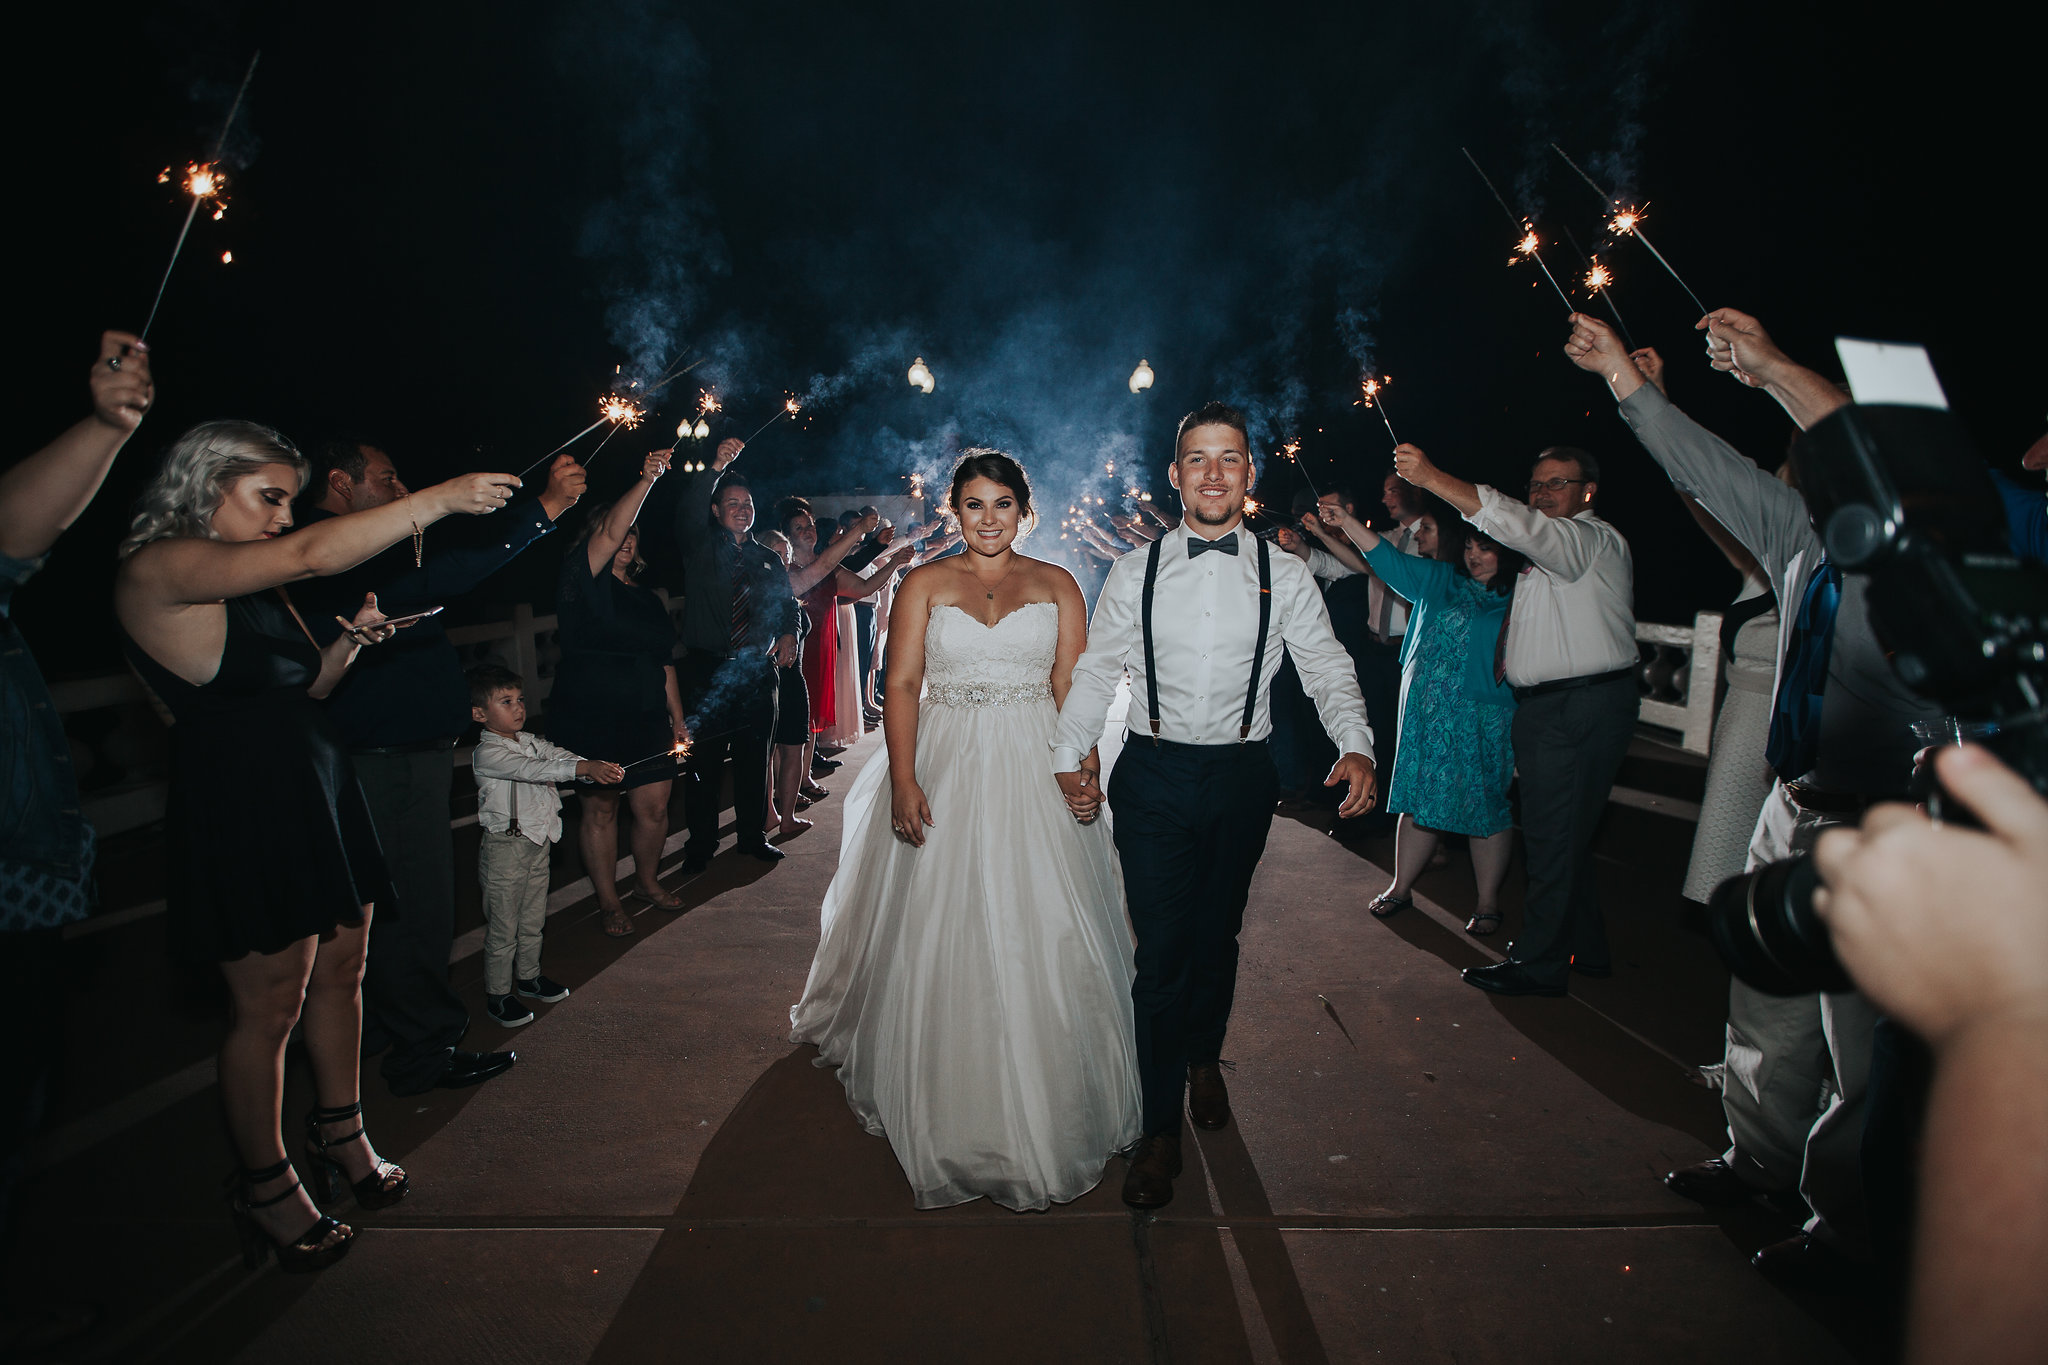 wedding photography | Vacaville Opera House Wedding | sparkler exit | Vacaville and Sacramento